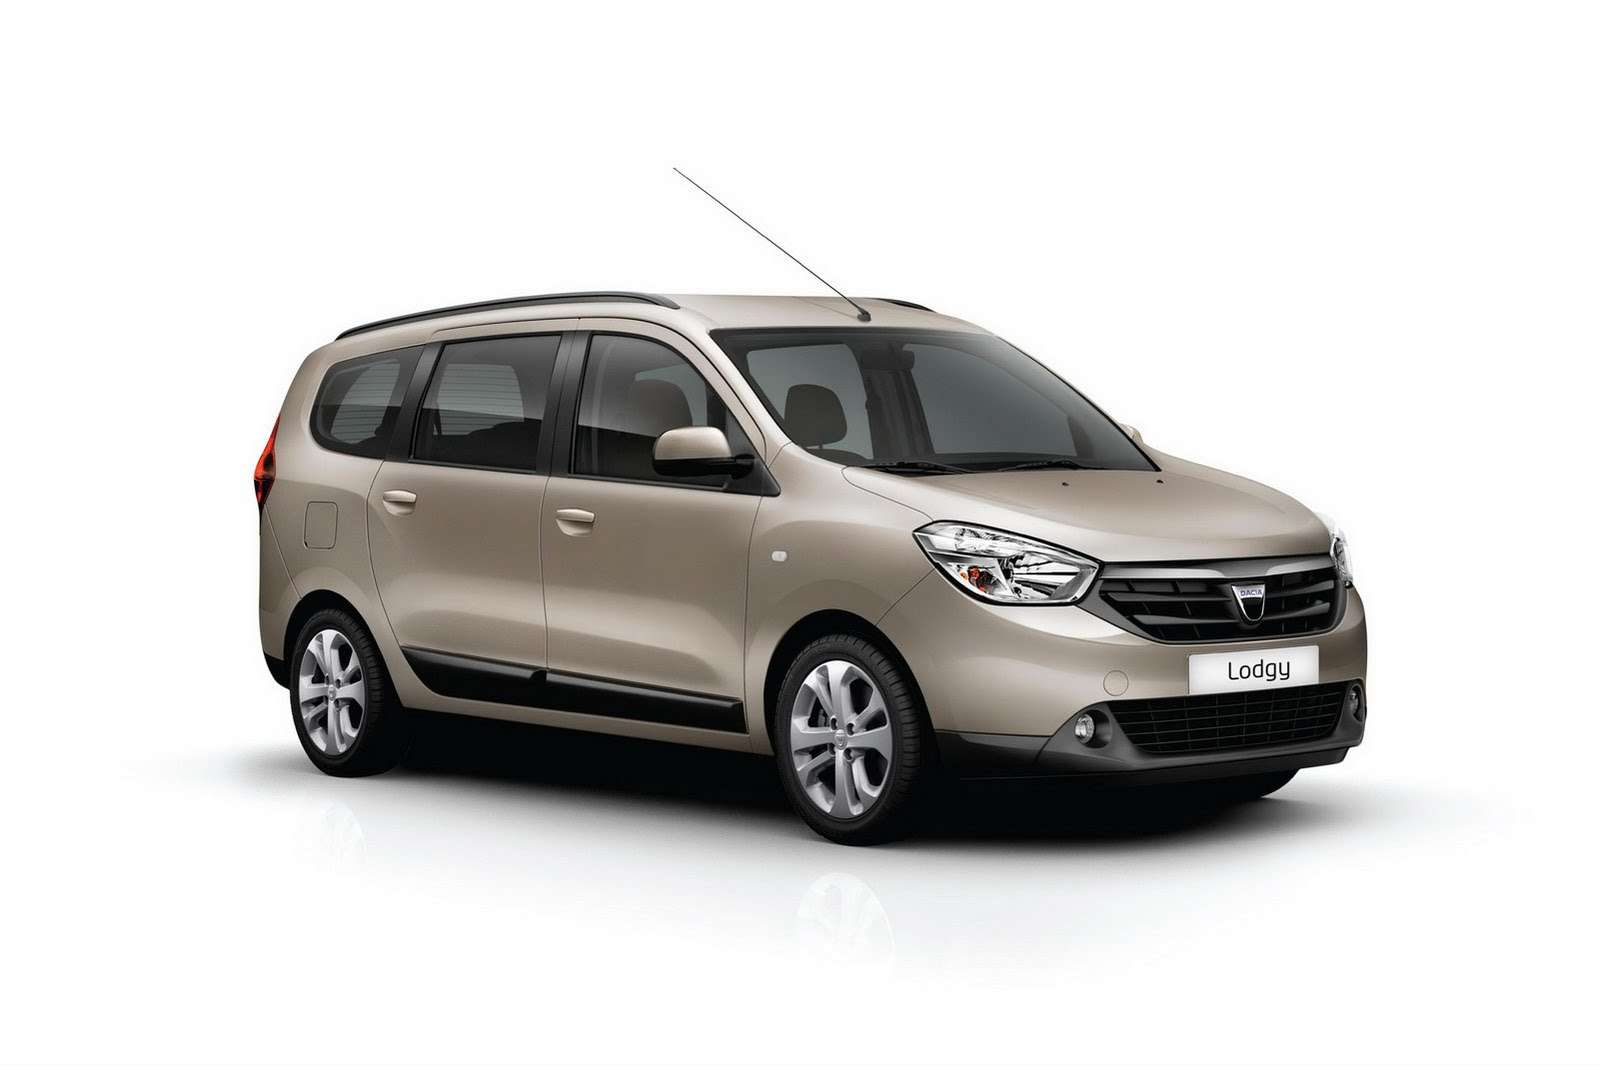 Dacia Lodgy new car photo styczen 2012